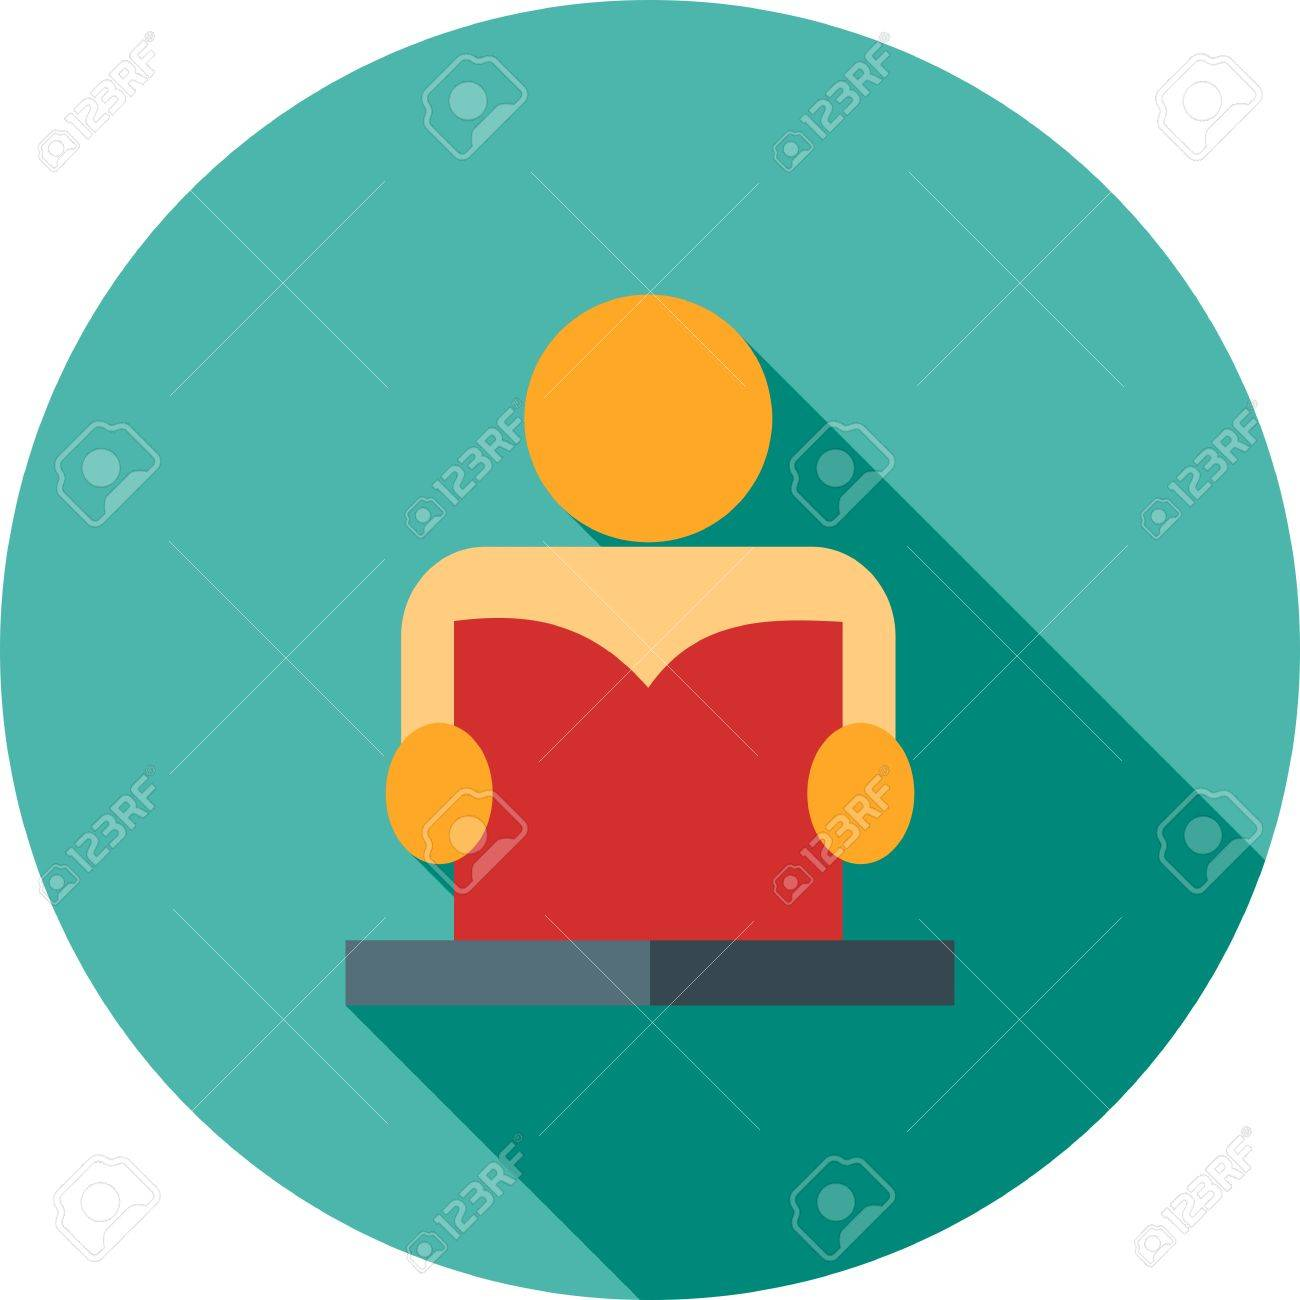 assignment exercise lesson icon vector image can also be used assignment exercise lesson icon vector image can also be used for education